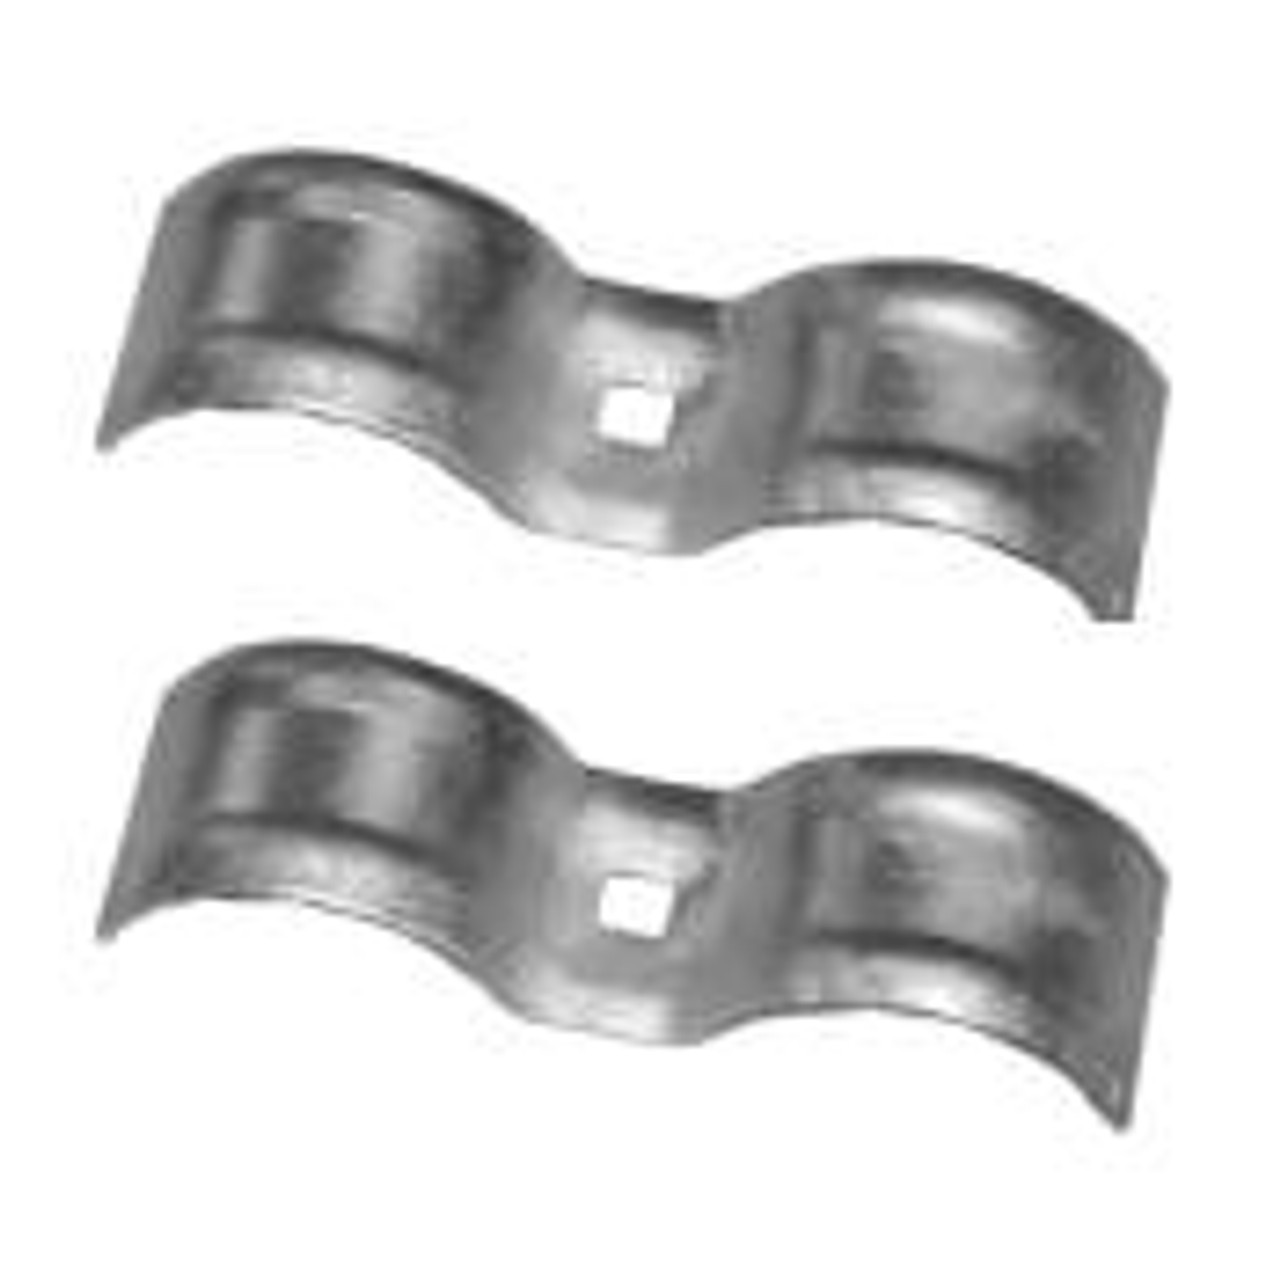 Galvanized Panel Clamp for Chain Link Kennels & Temporary Fencing Panels